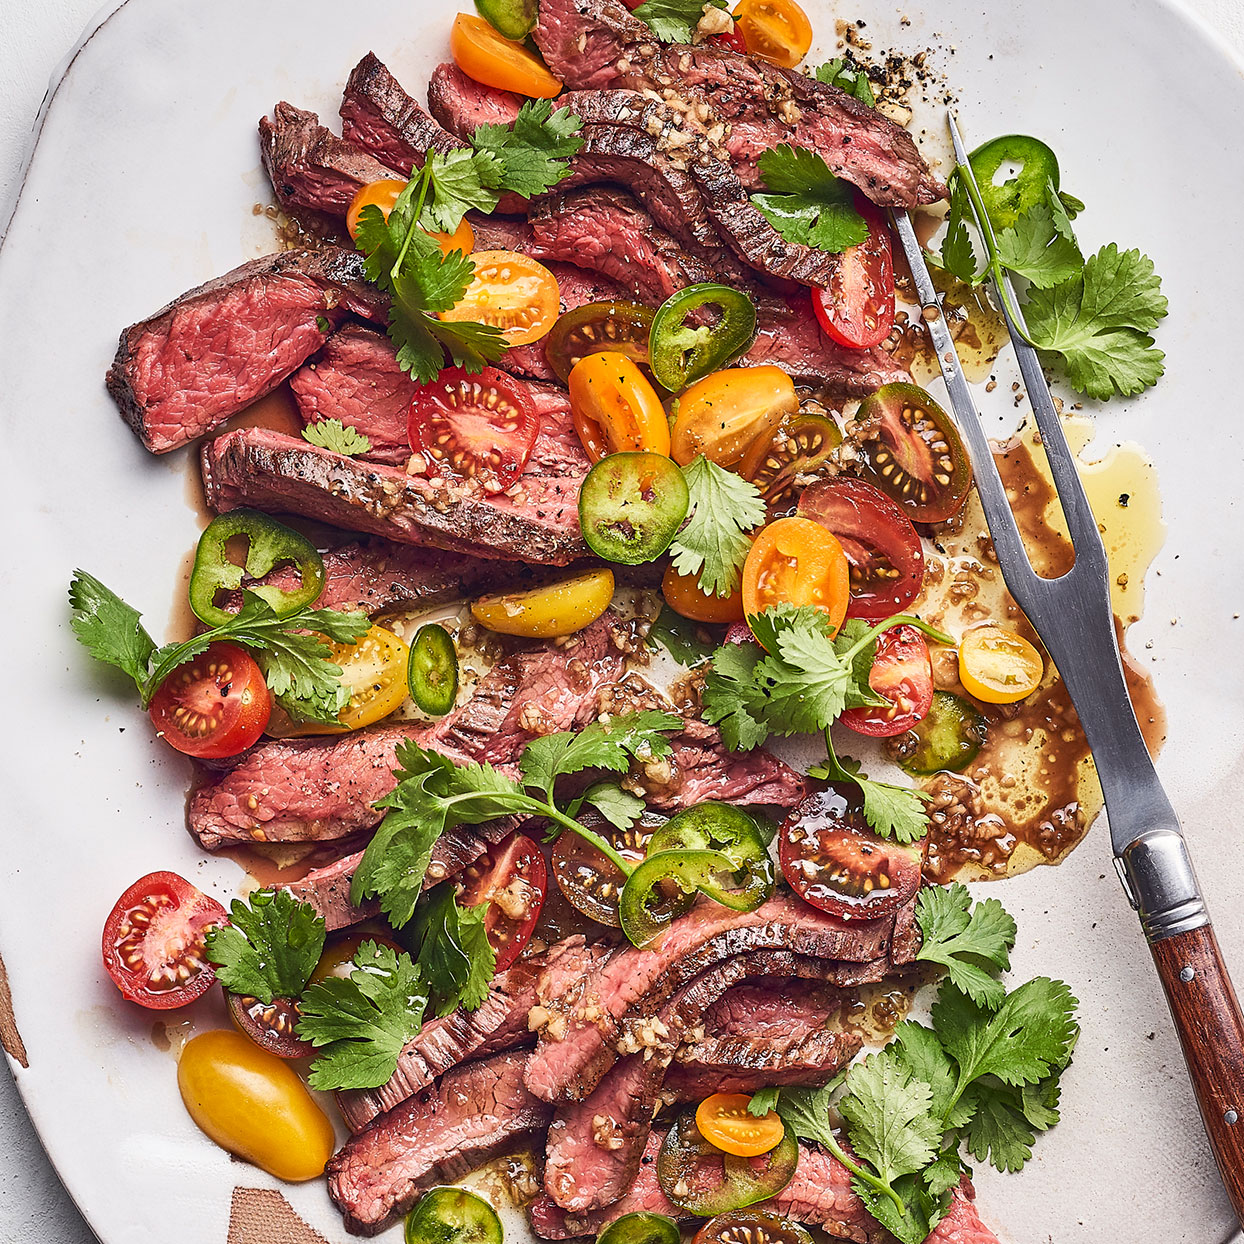 Grilled Flank Steak with Tomato Salad Trusted Brands